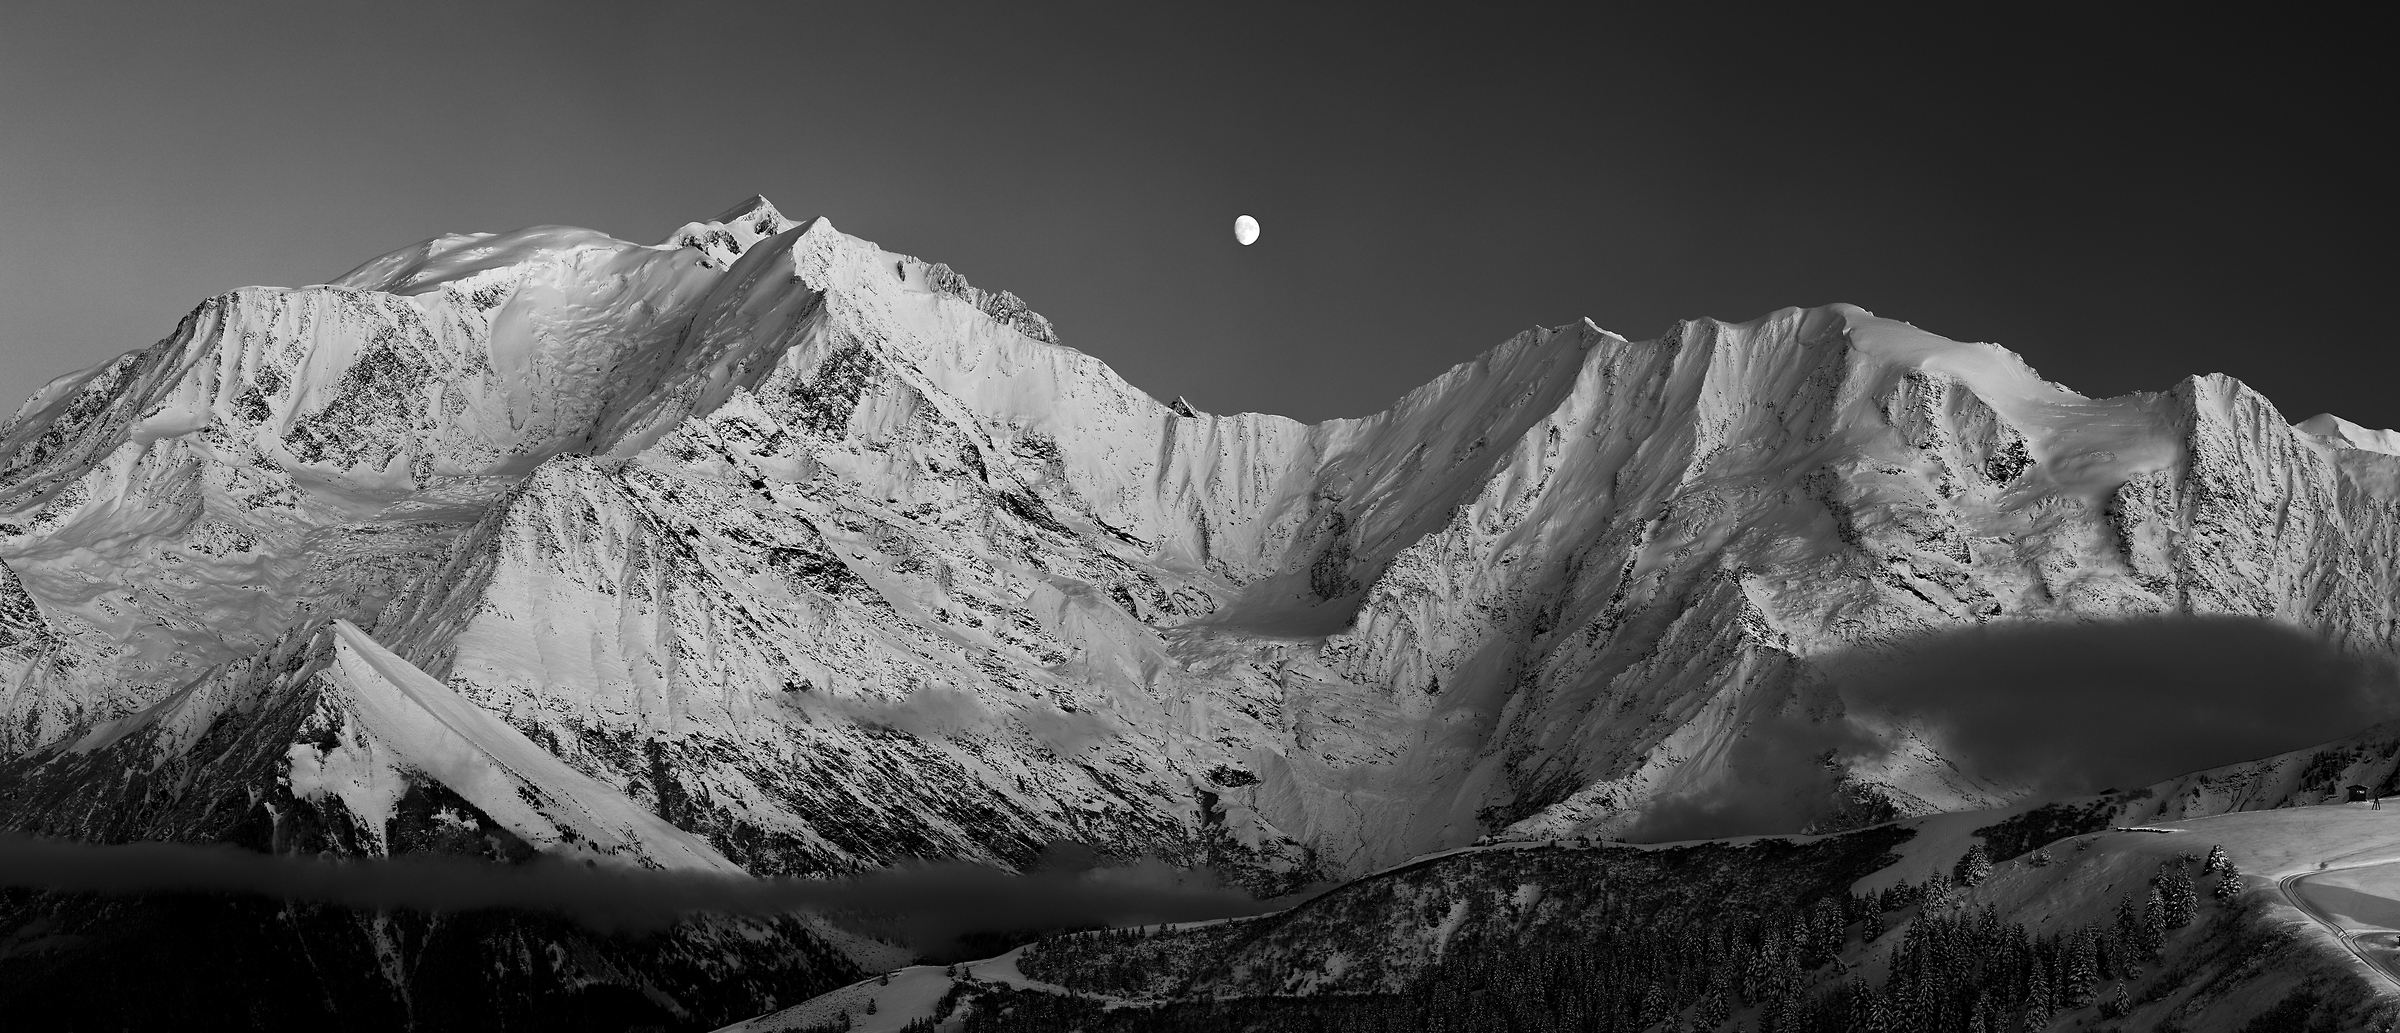 283 megapixels! A very high resolution, large-format VAST photo print of a mountain range with the moon at nighttime; black & white landscape photograph created by Alexandre Deschaumes in Mont Blanc Massif, Saint-Gervais-les-Bains, France